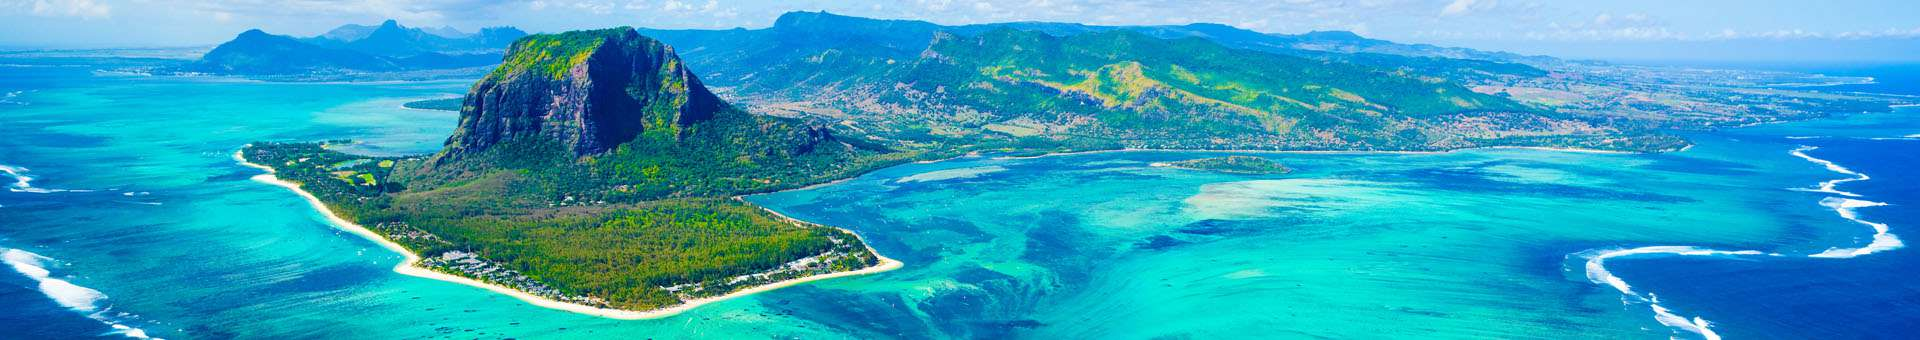 Search Whois information of domain names in Mauritius